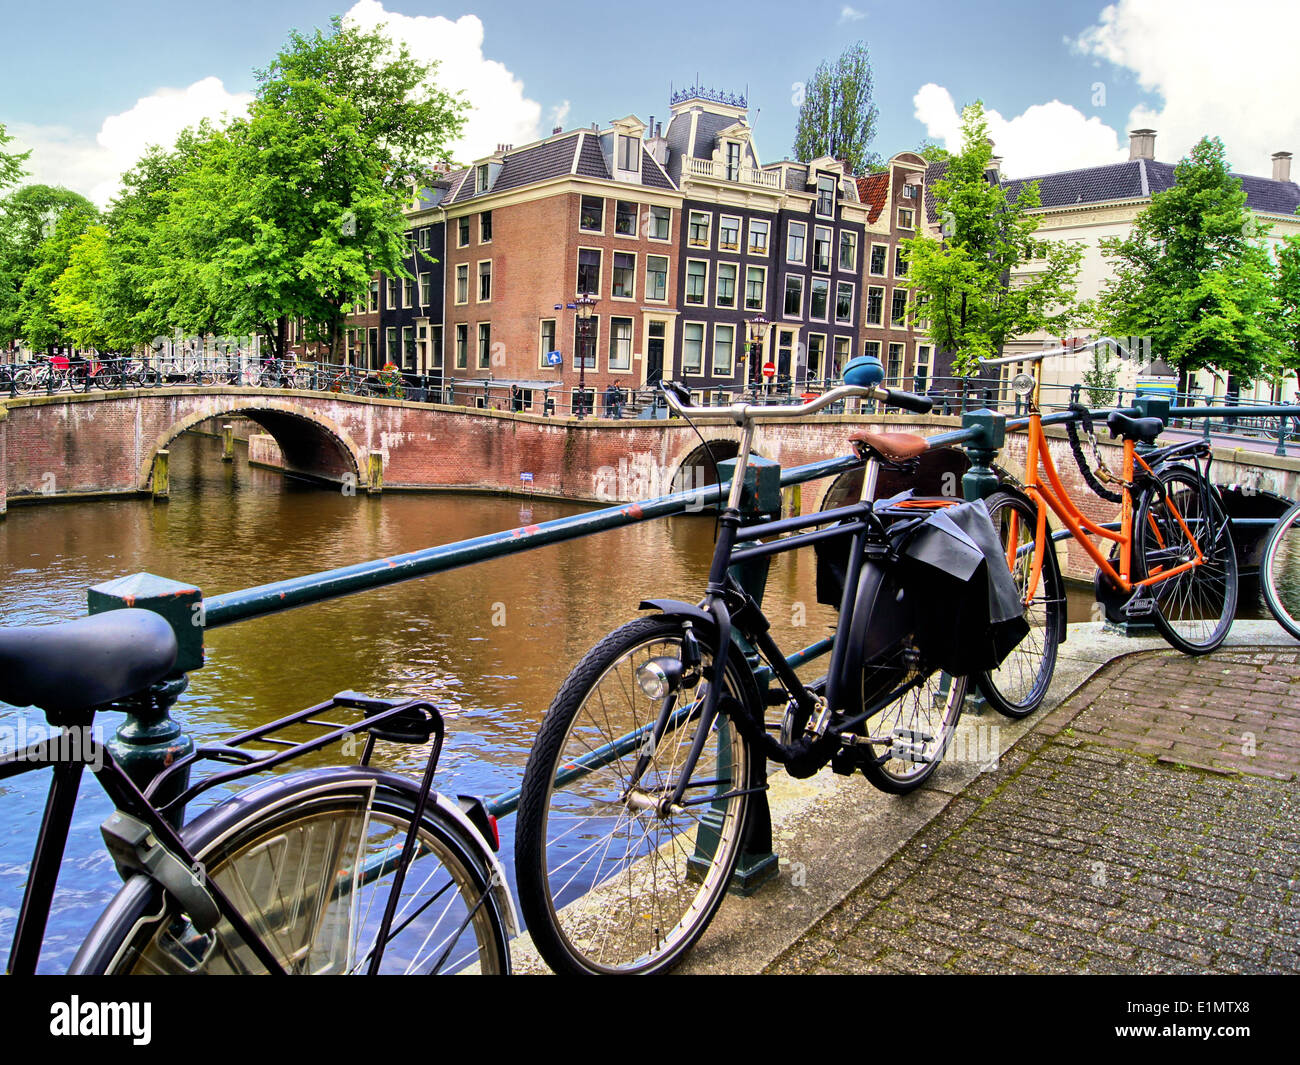 Amsterdam canal scene with bicycles and bridges - Stock Image